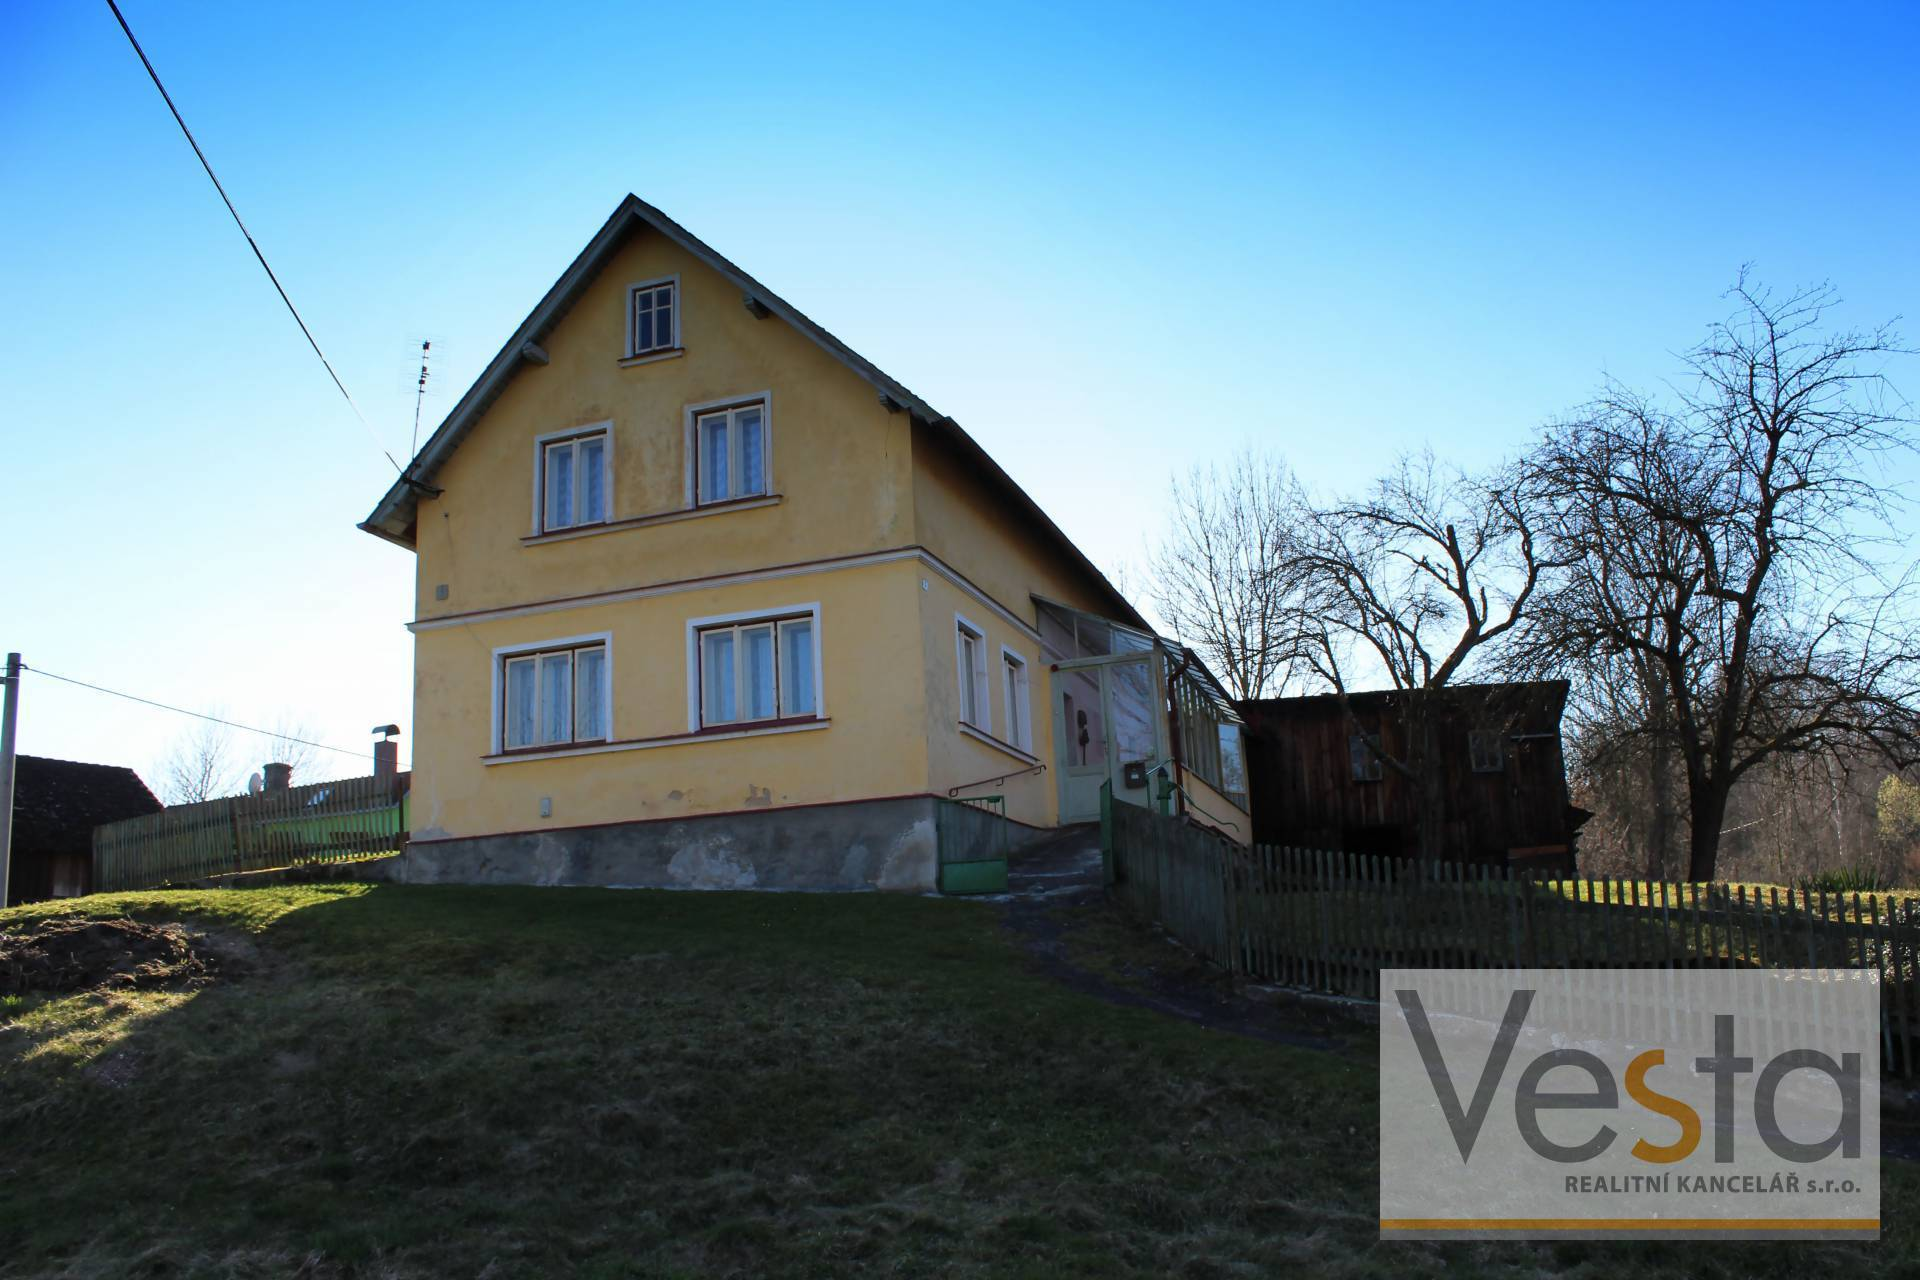 Cottage near recreational lake Stara Oleska, Decin district